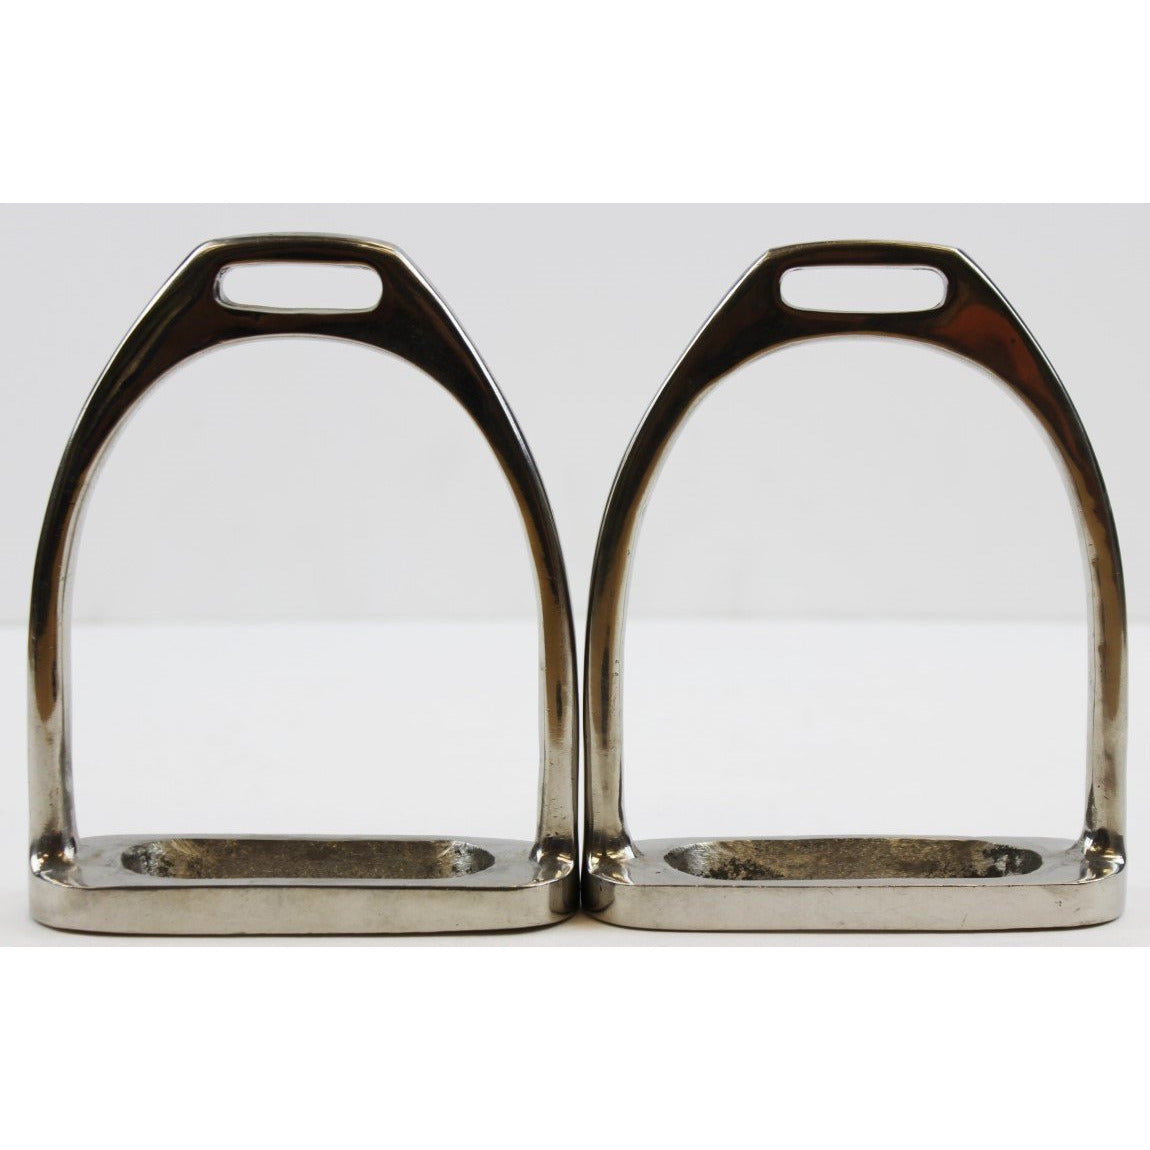 "2nd Pair of Silver Horse 4 1/4"" Stirrups"